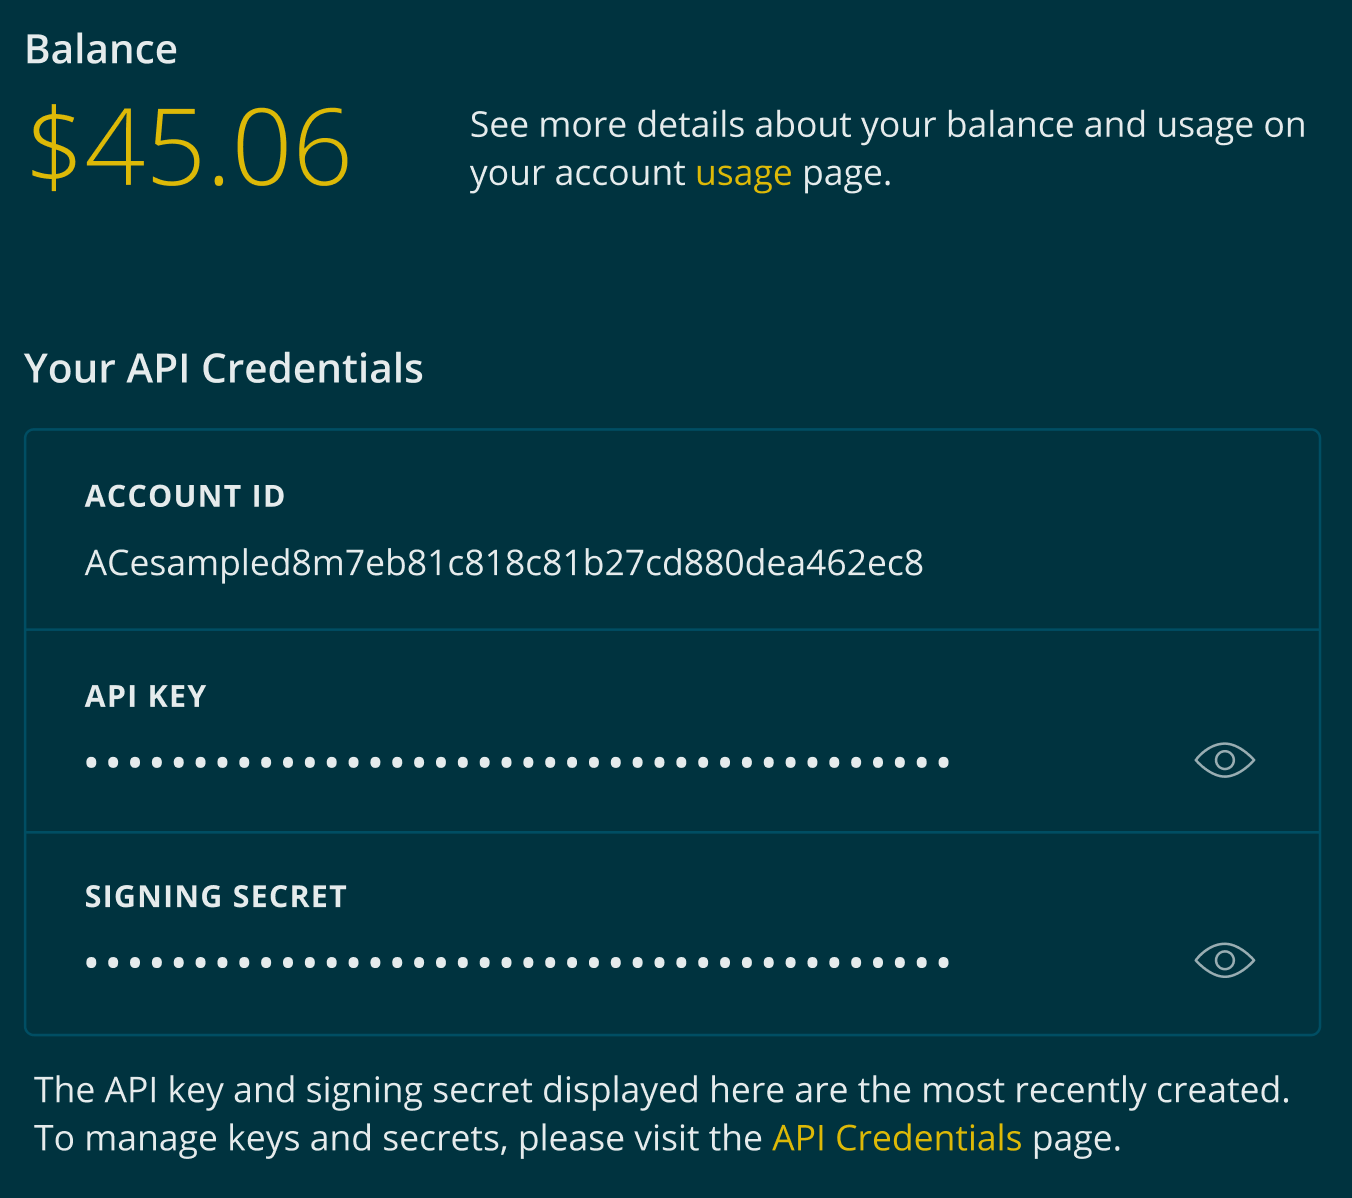 The dashboard contains your most recently created signing secret